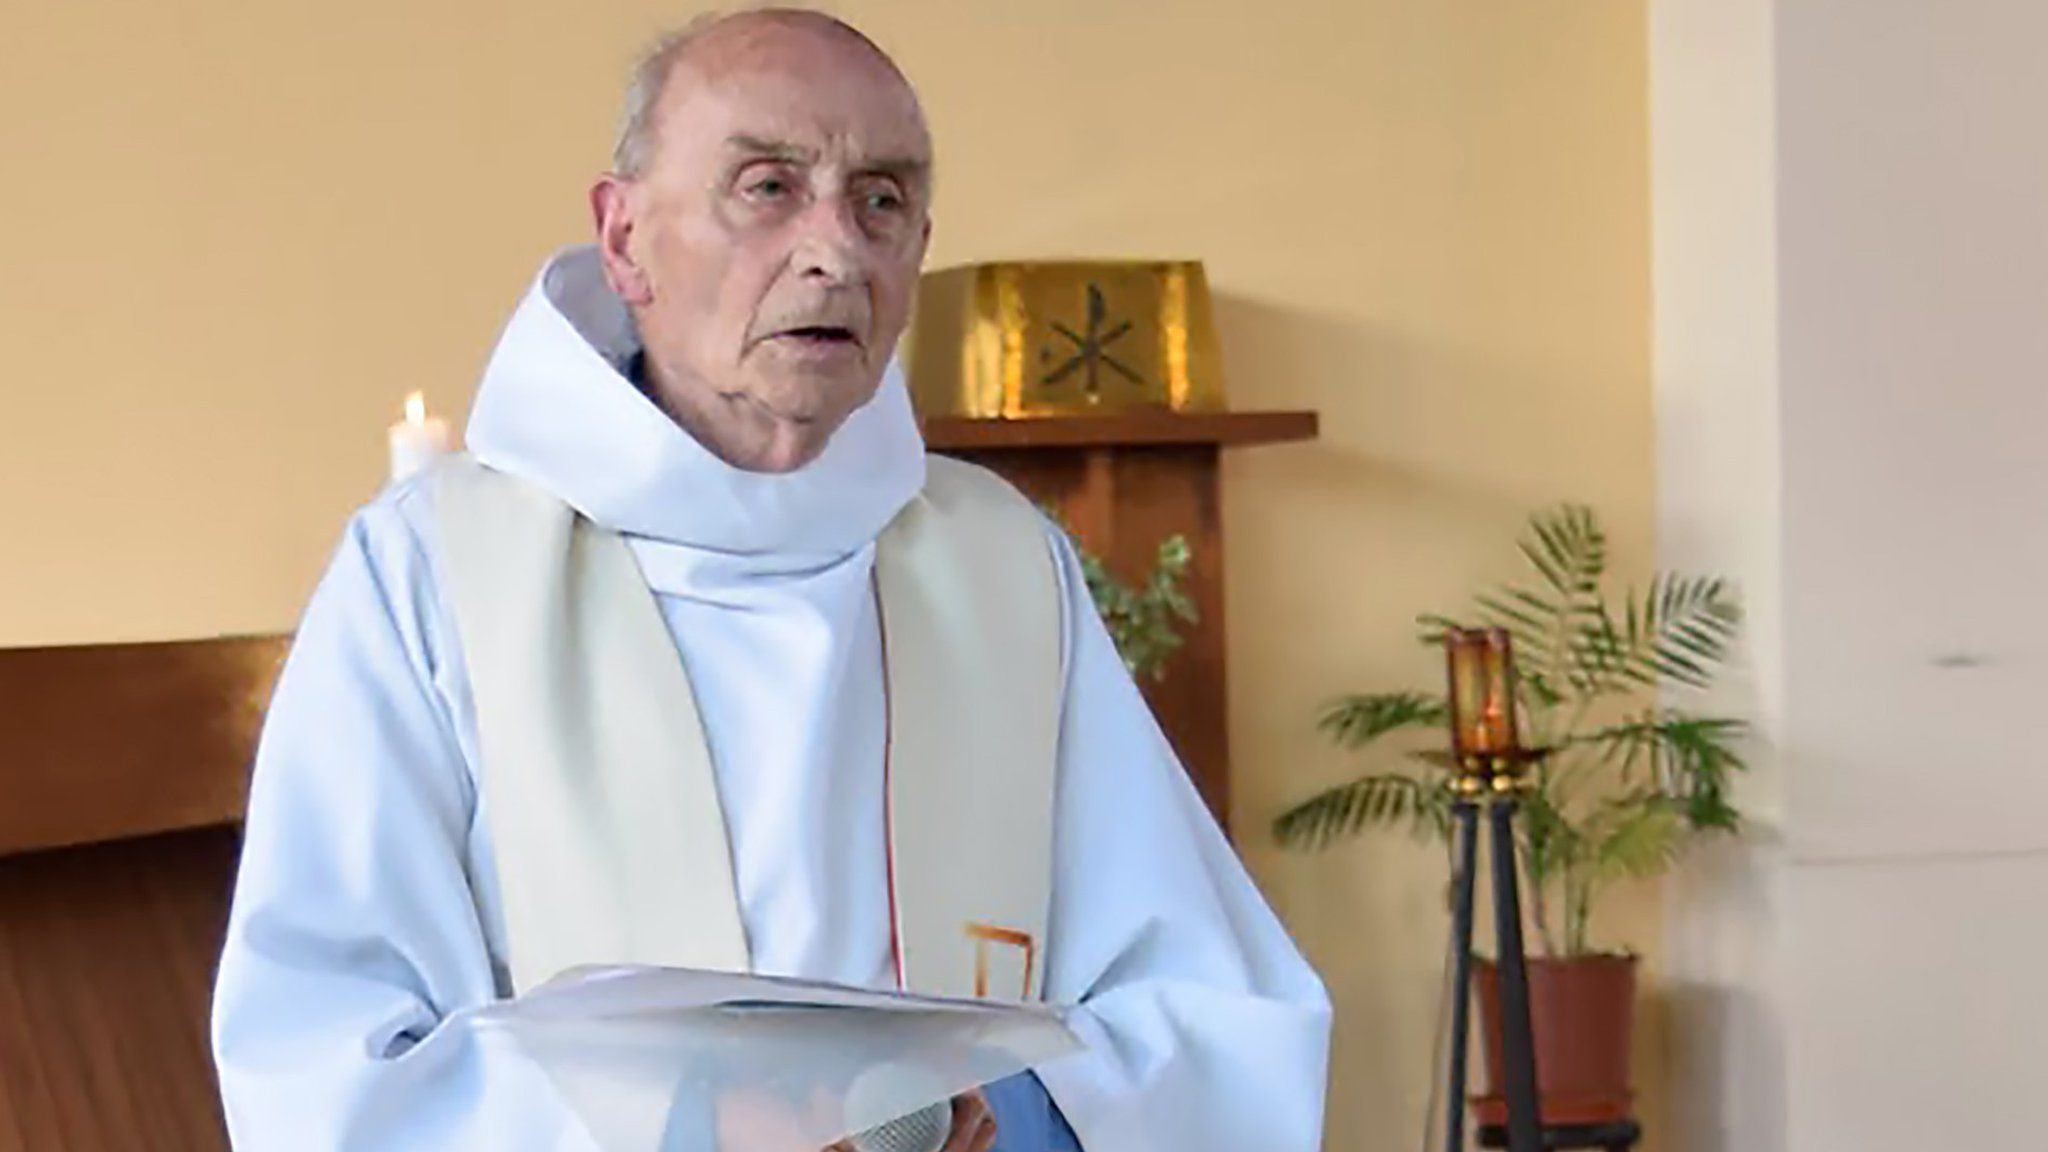 French priest takes his own life in church after abuse